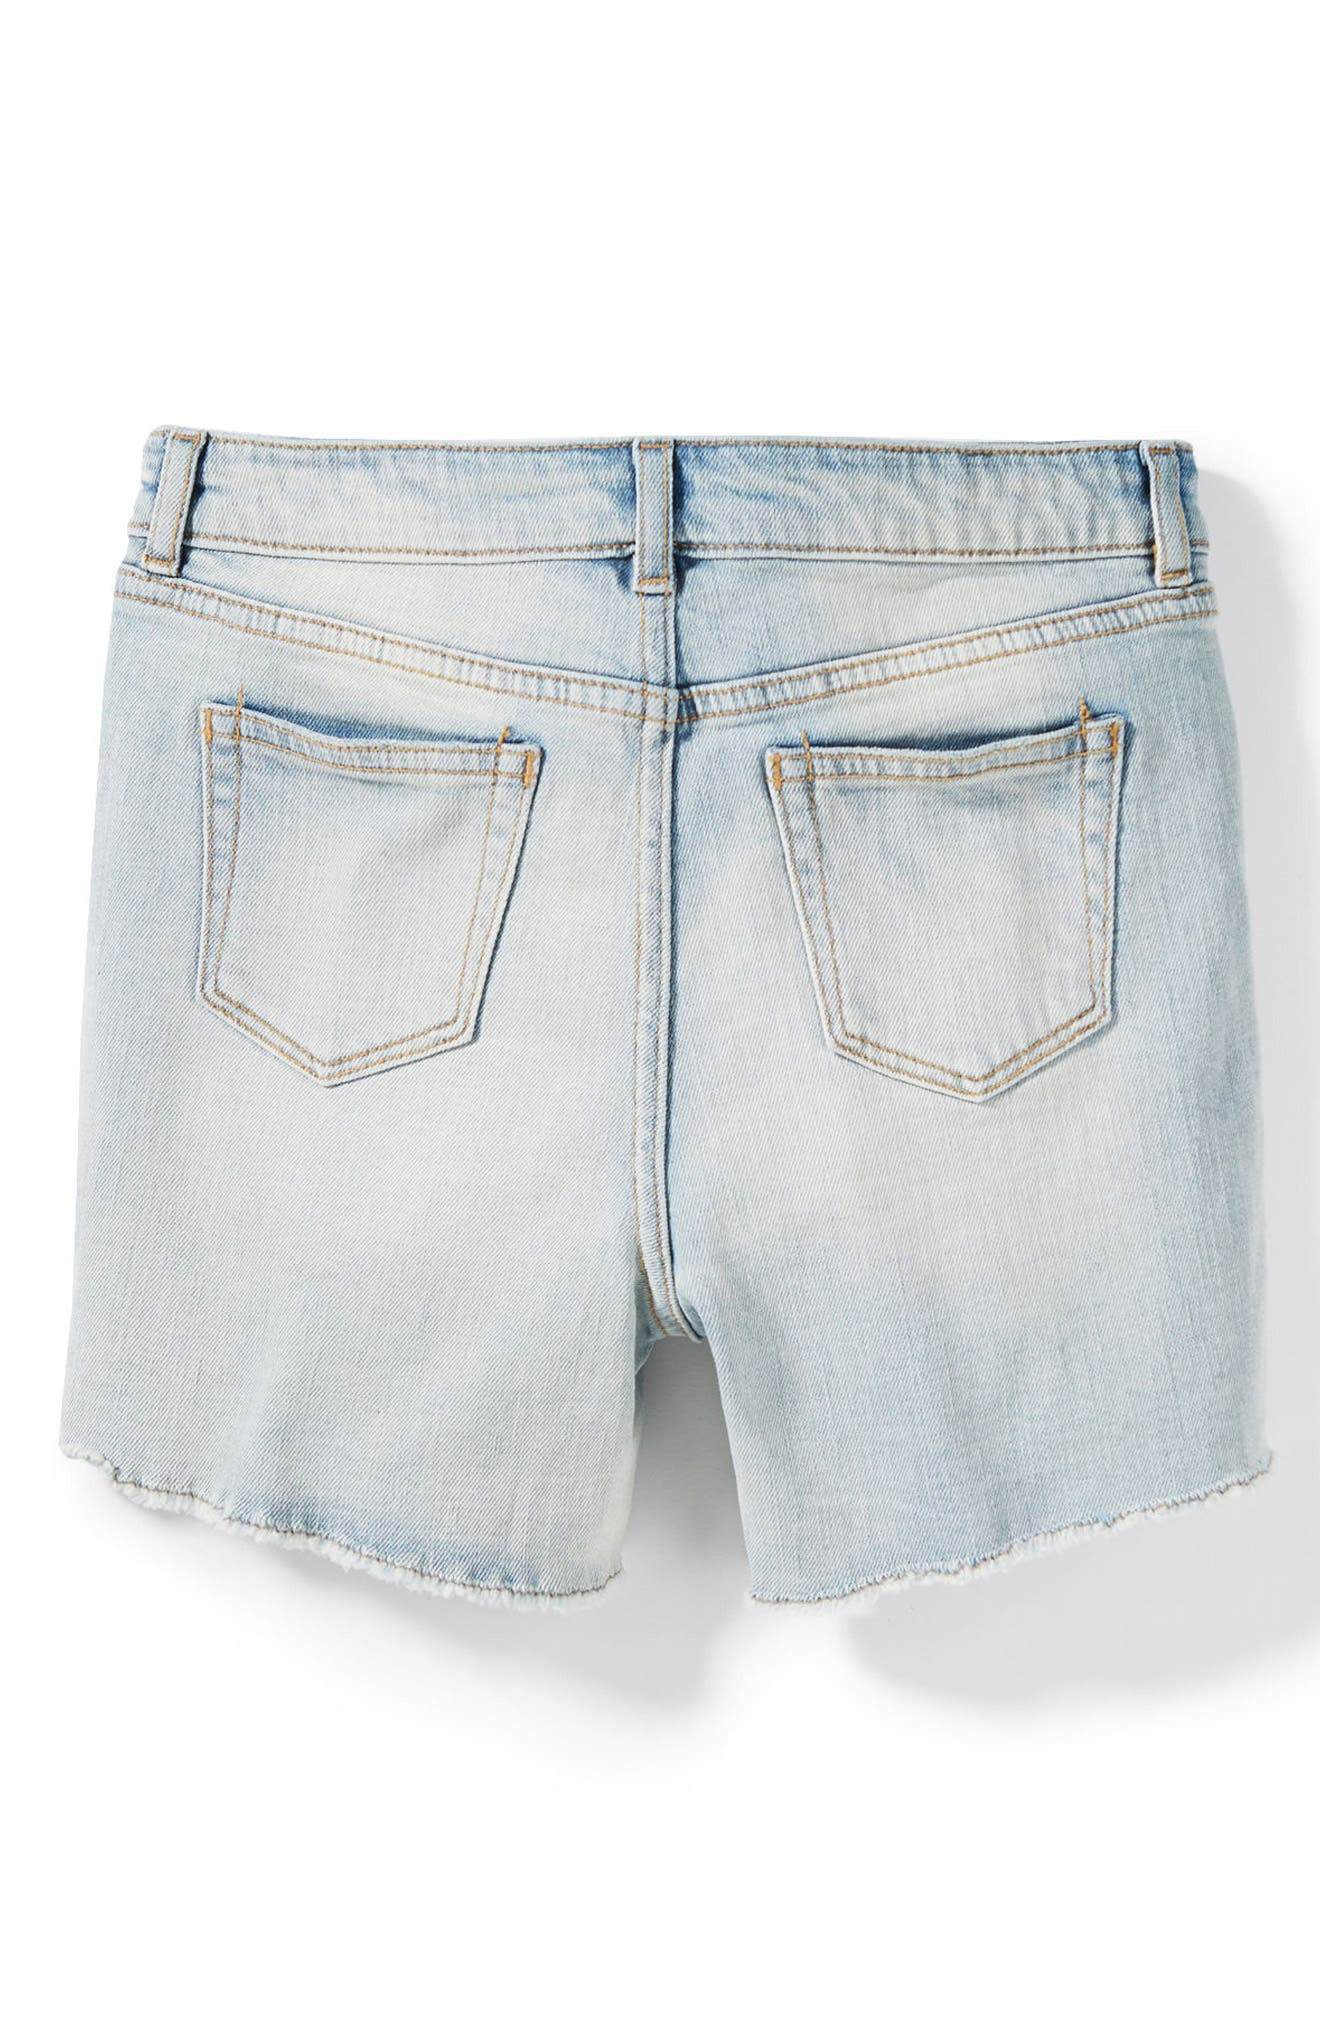 Griffin Rip & Repair Cutoff Denim Shorts,                             Alternate thumbnail 2, color,